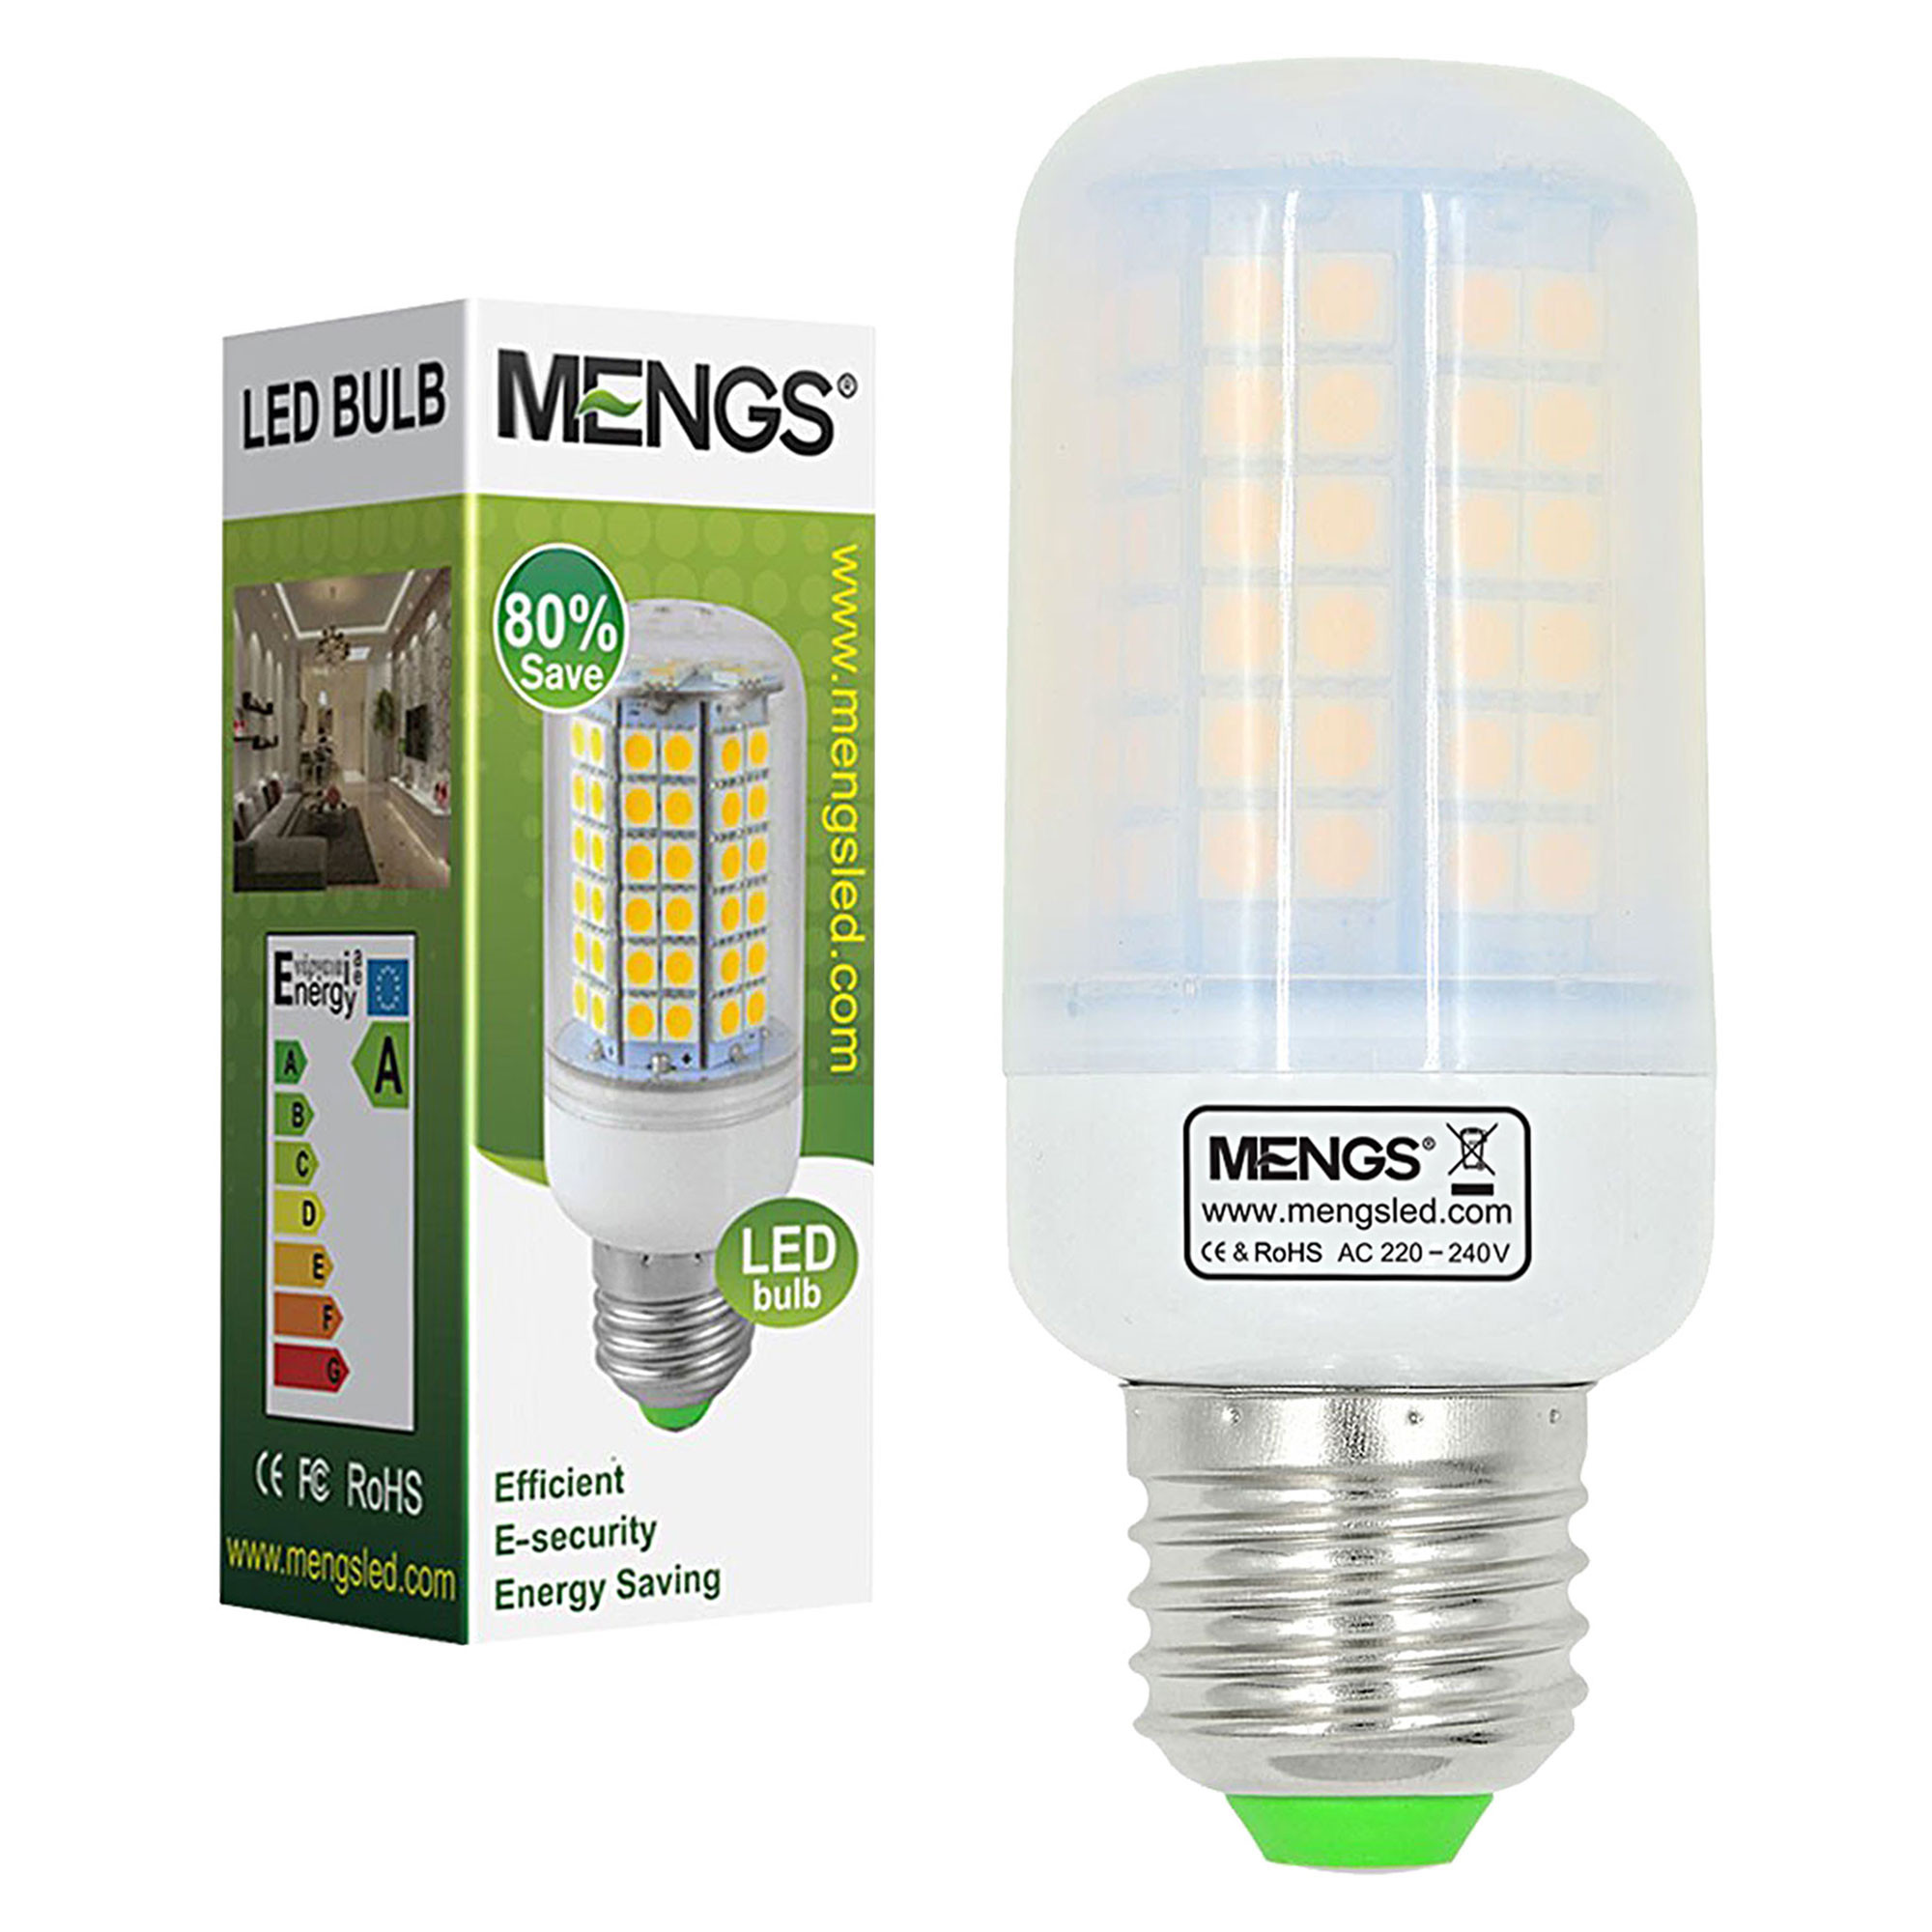 MENGS® E27 12W LED Corn Light 96x 5050 SMD LED Lamp Bulb in Warm White Energy-Saving Light